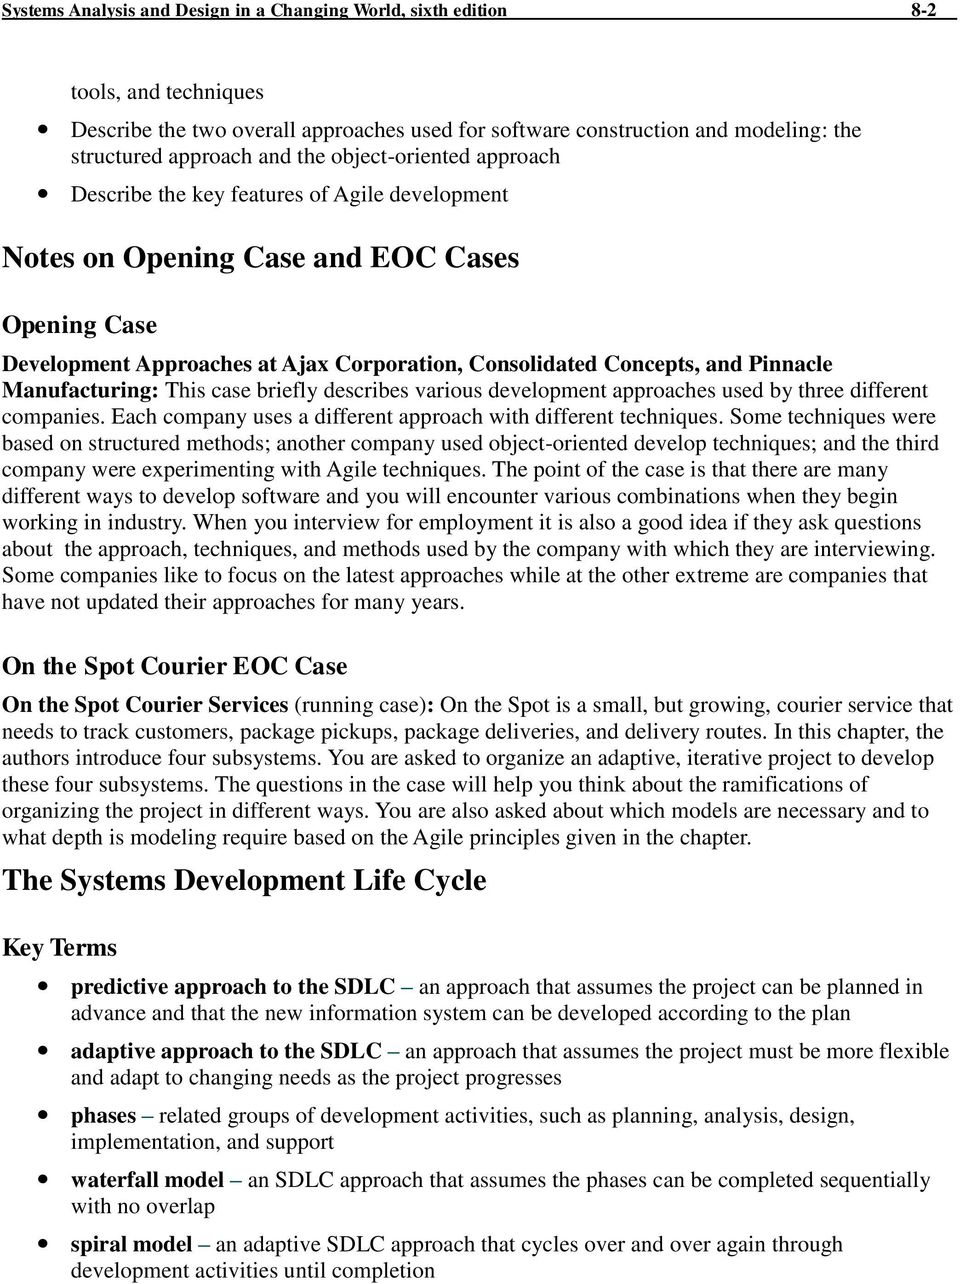 Pinnacle Manufacturing: This case briefly describes various development approaches used by three different companies. Each company uses a different approach with different techniques.